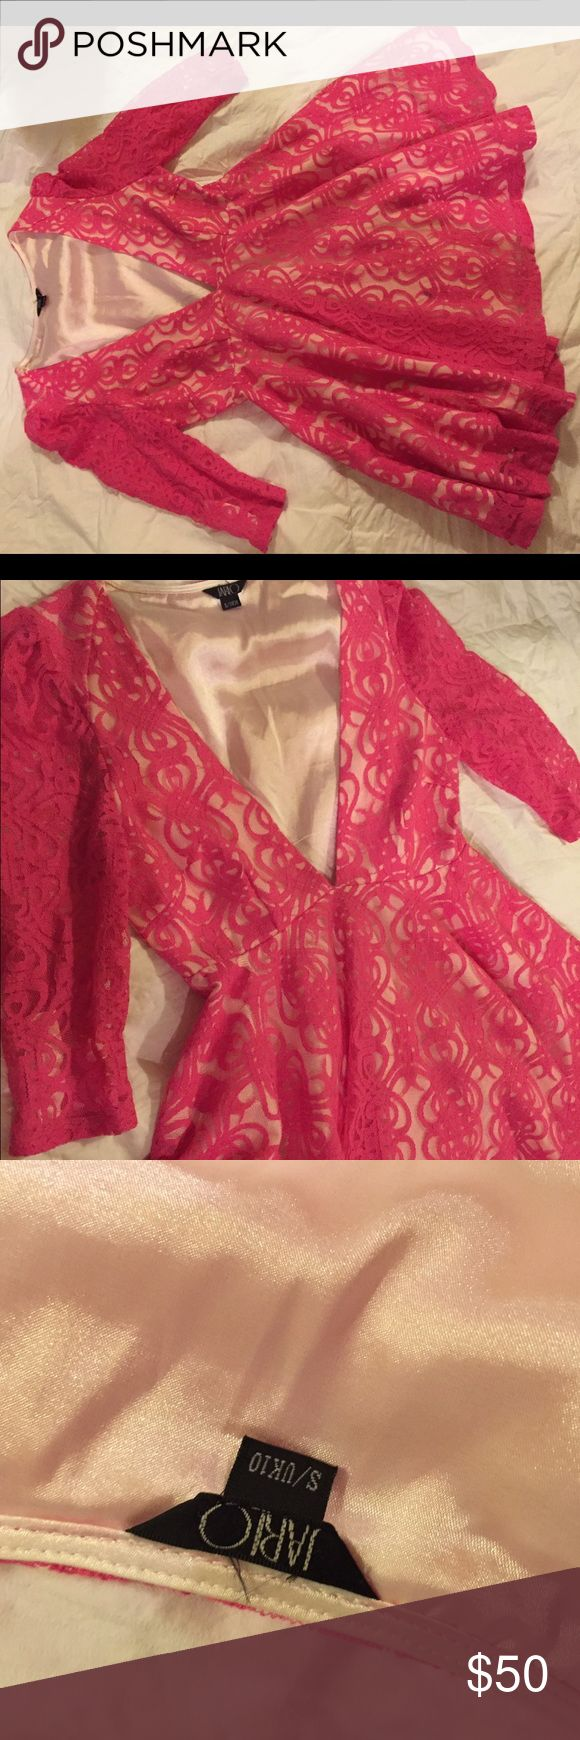 Pink lace plunge neck dress by JARLO Pink lace plunging neckline, ordered from revolve clothing, only worn once, excellent condition, size S jarlo Dresses Mini